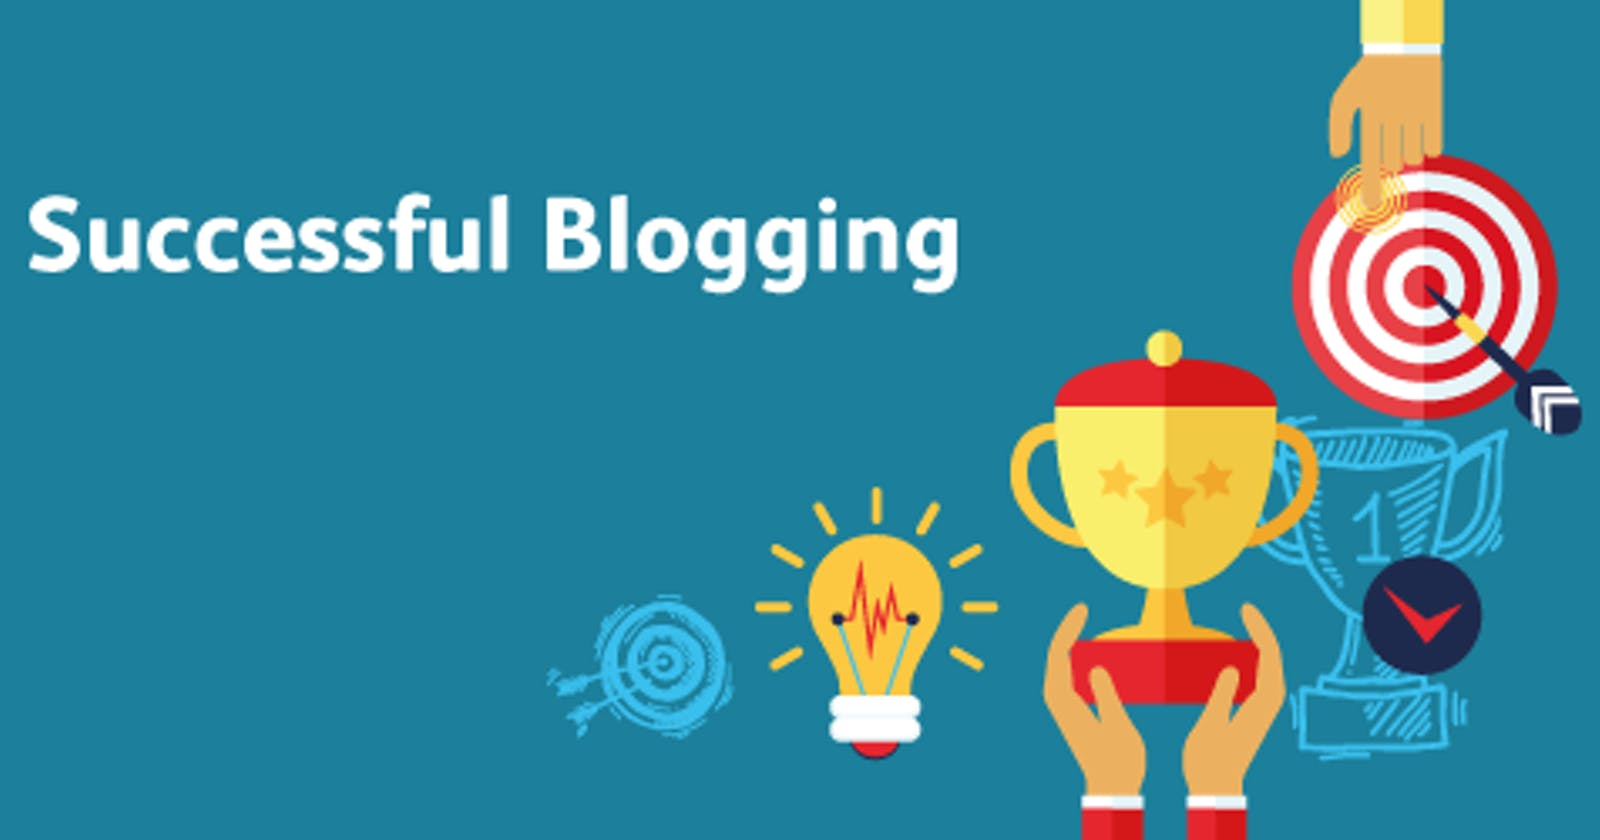 WHAT SUCCESSFUL BLOGGING MEANS TO ME.